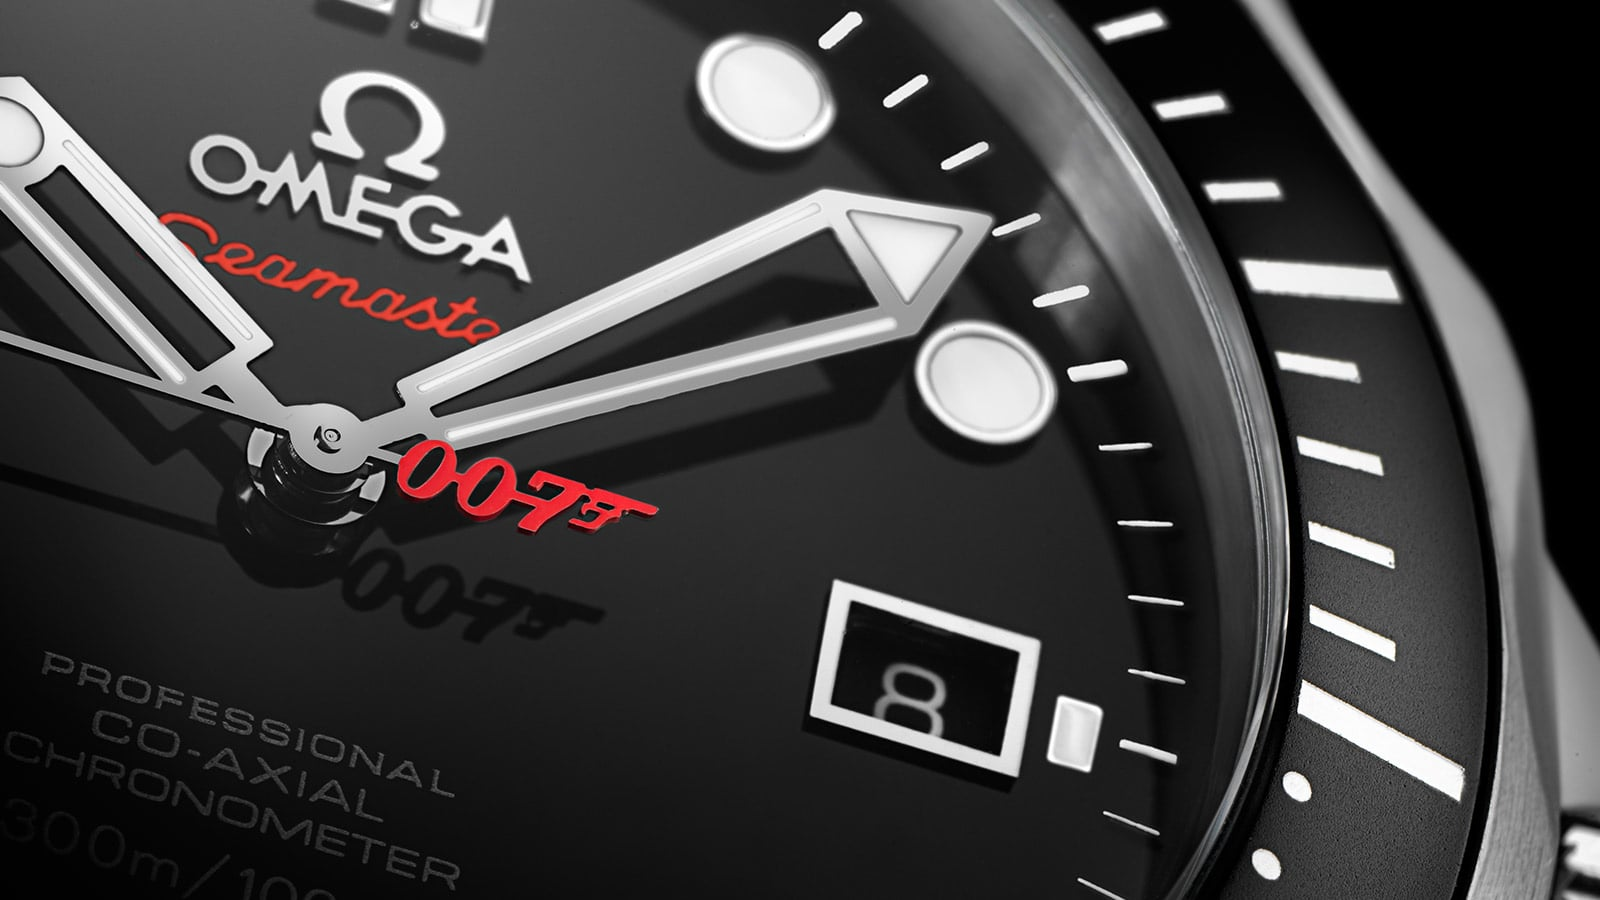 OMEGA and James Bond : a beautiful friendship | OMEGA® 歐米茄與占士邦:友誼永固 | OMEGA® - 投影片1: 5 - 9886